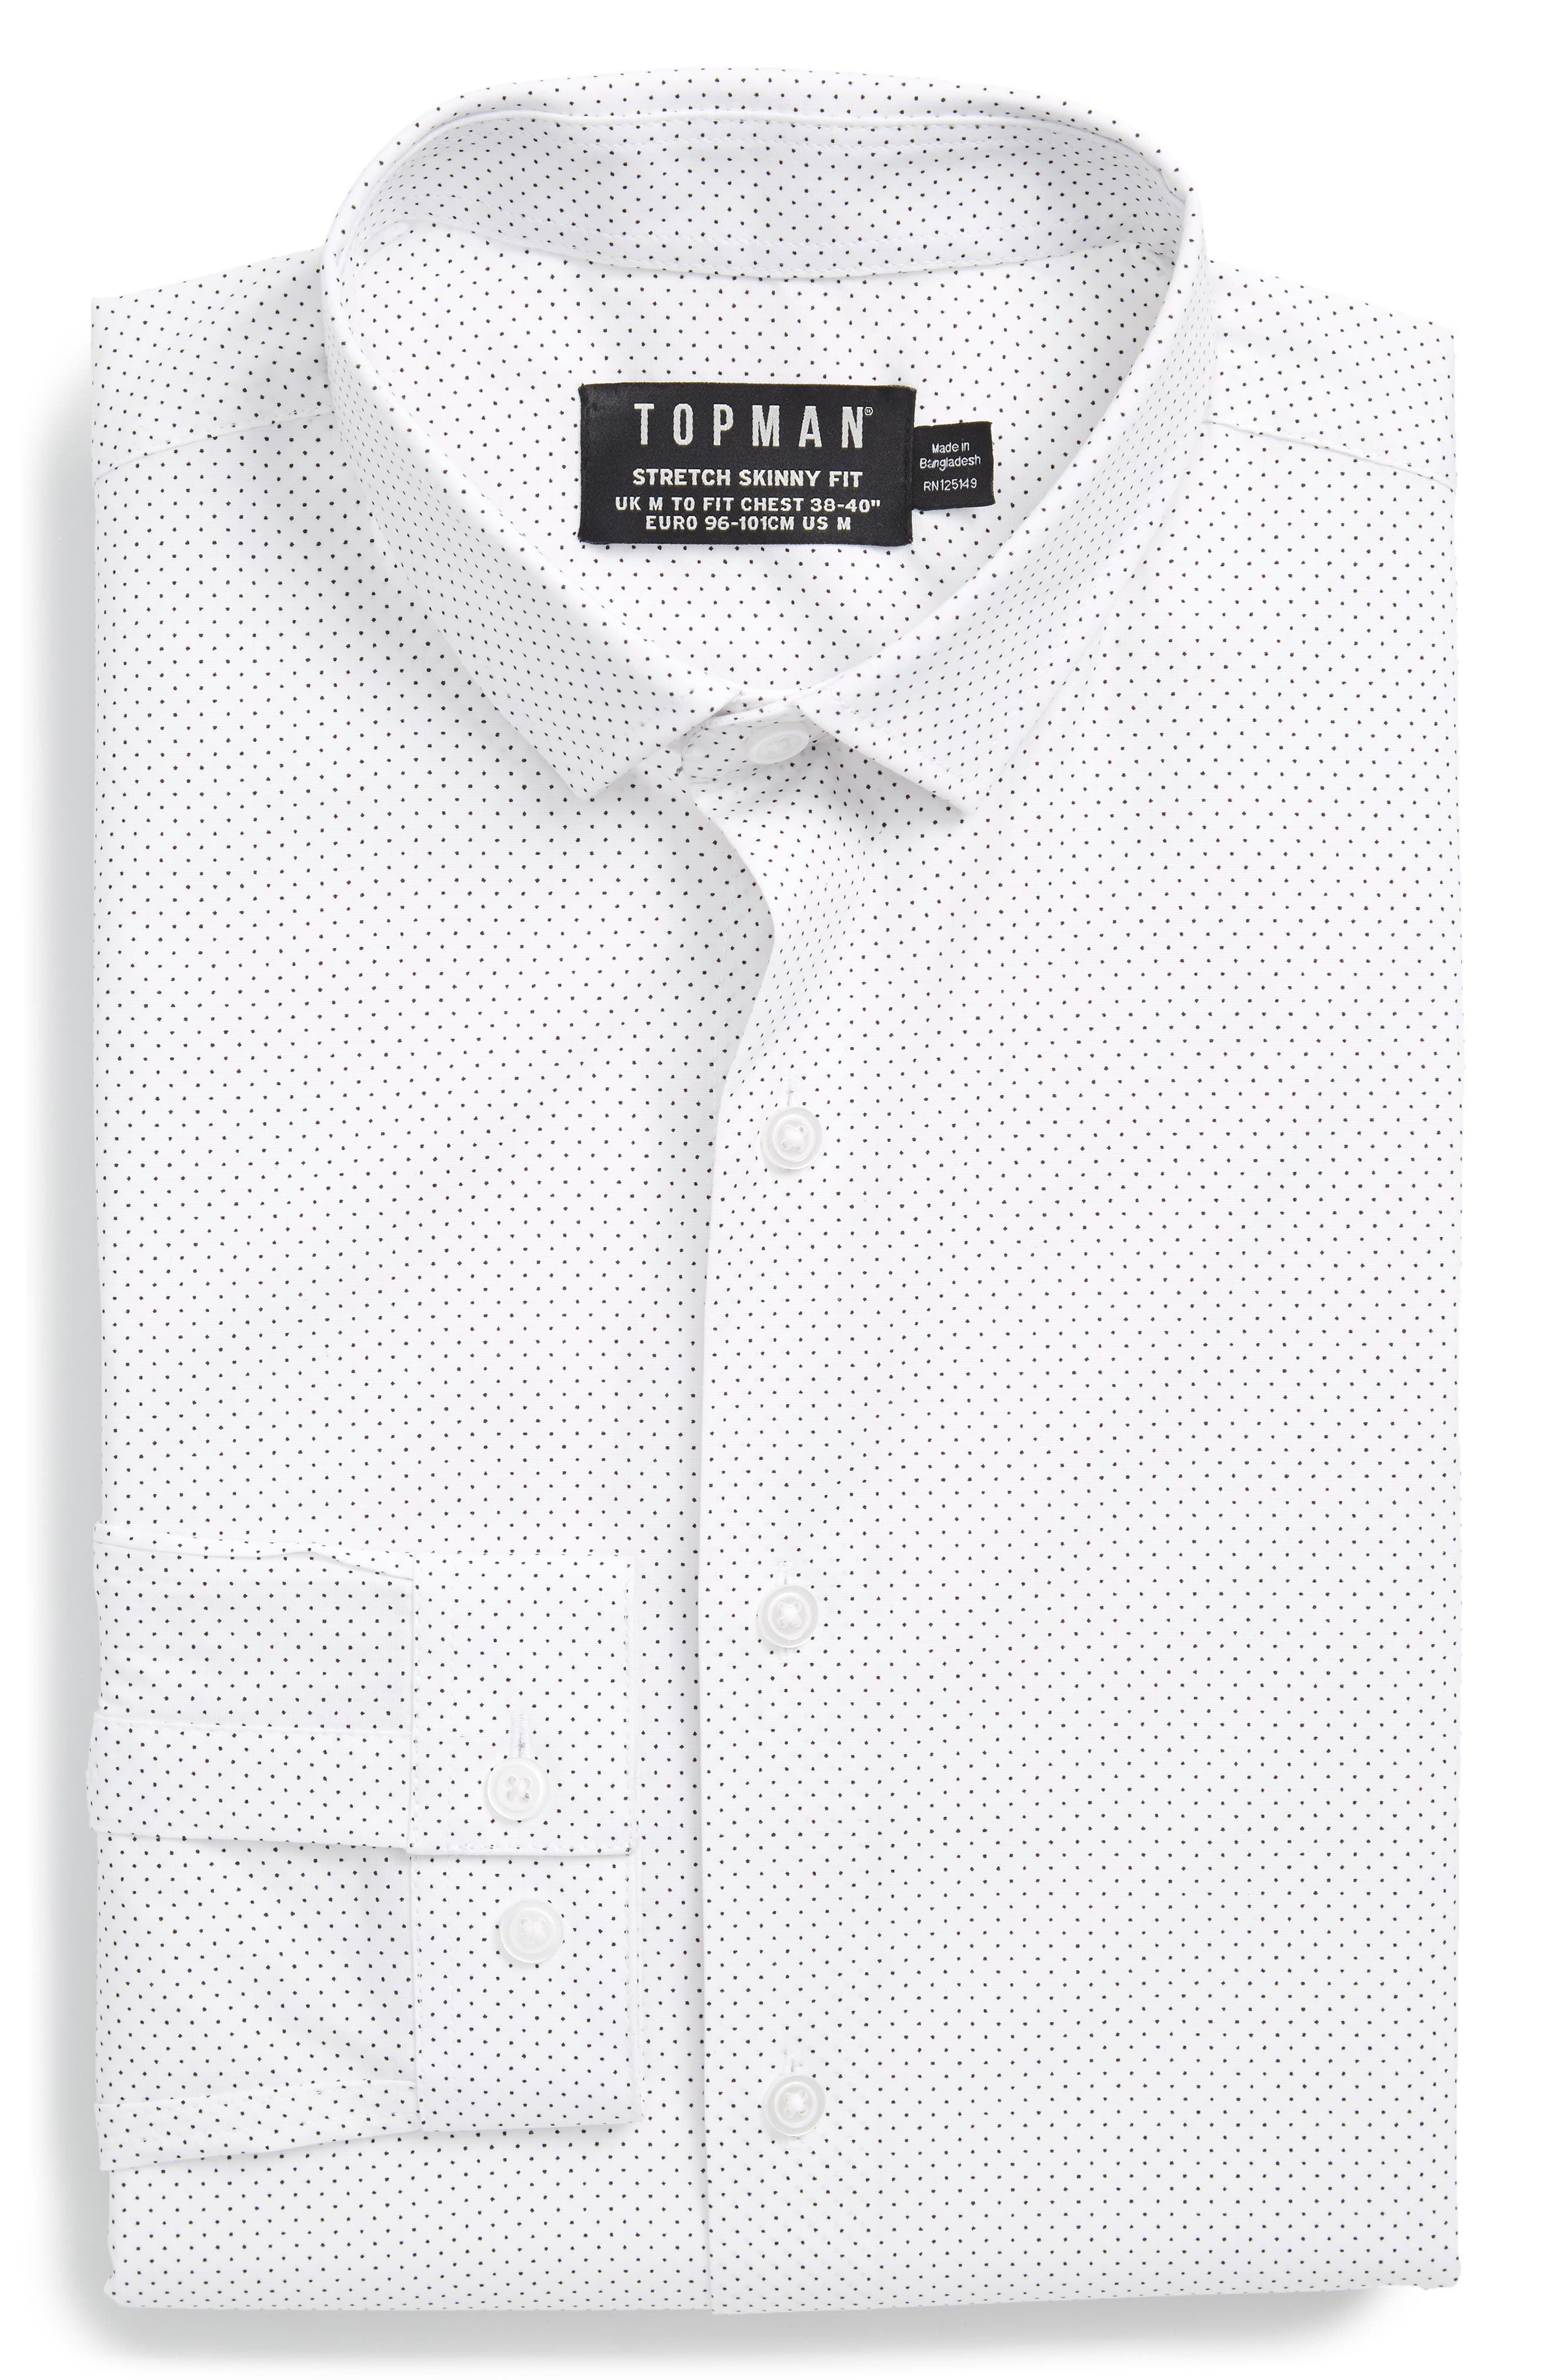 Topman Dot Print Dress Shirt